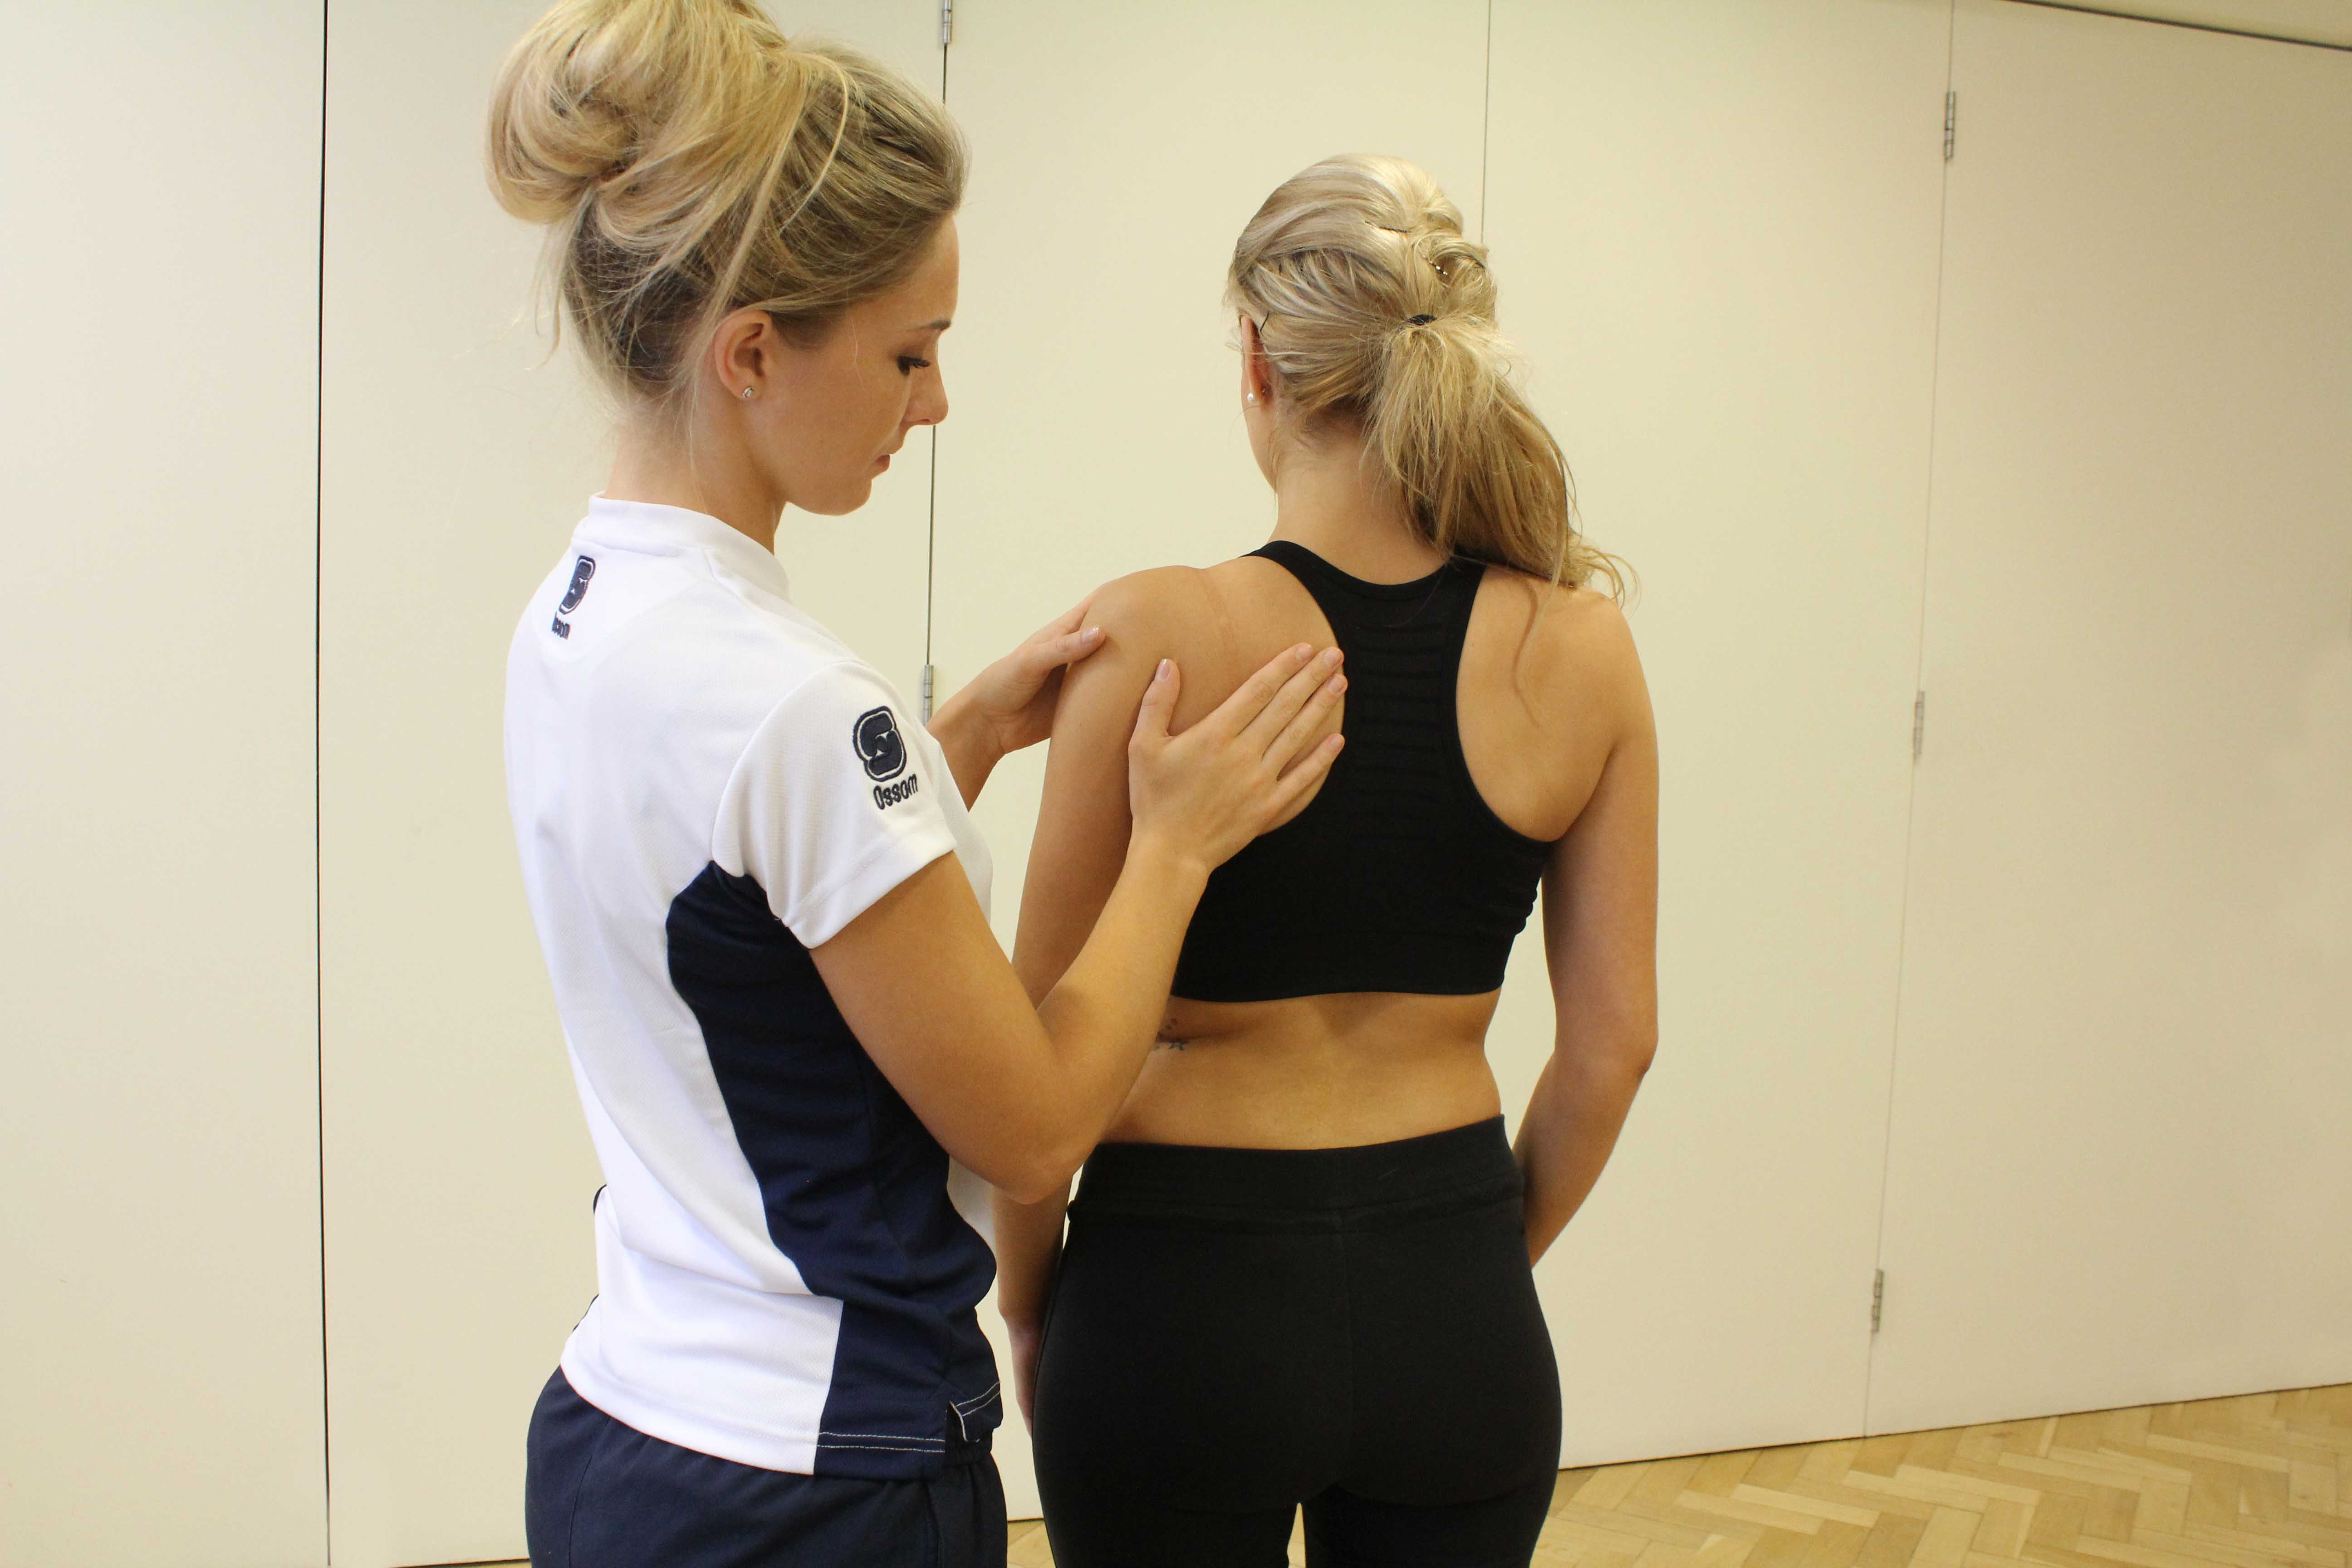 Our physiotherapist assessing range of movement in the shoulder.